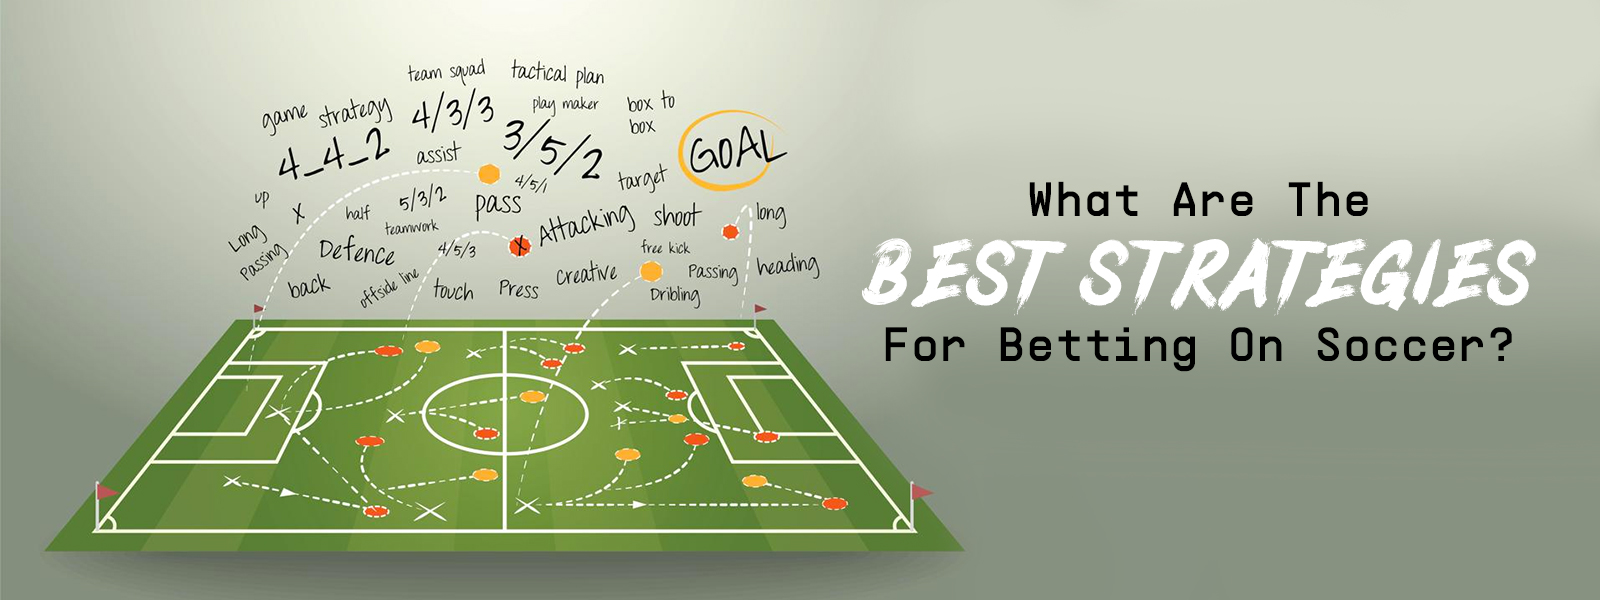 What Are The Best Strategies For Betting On Soccer?